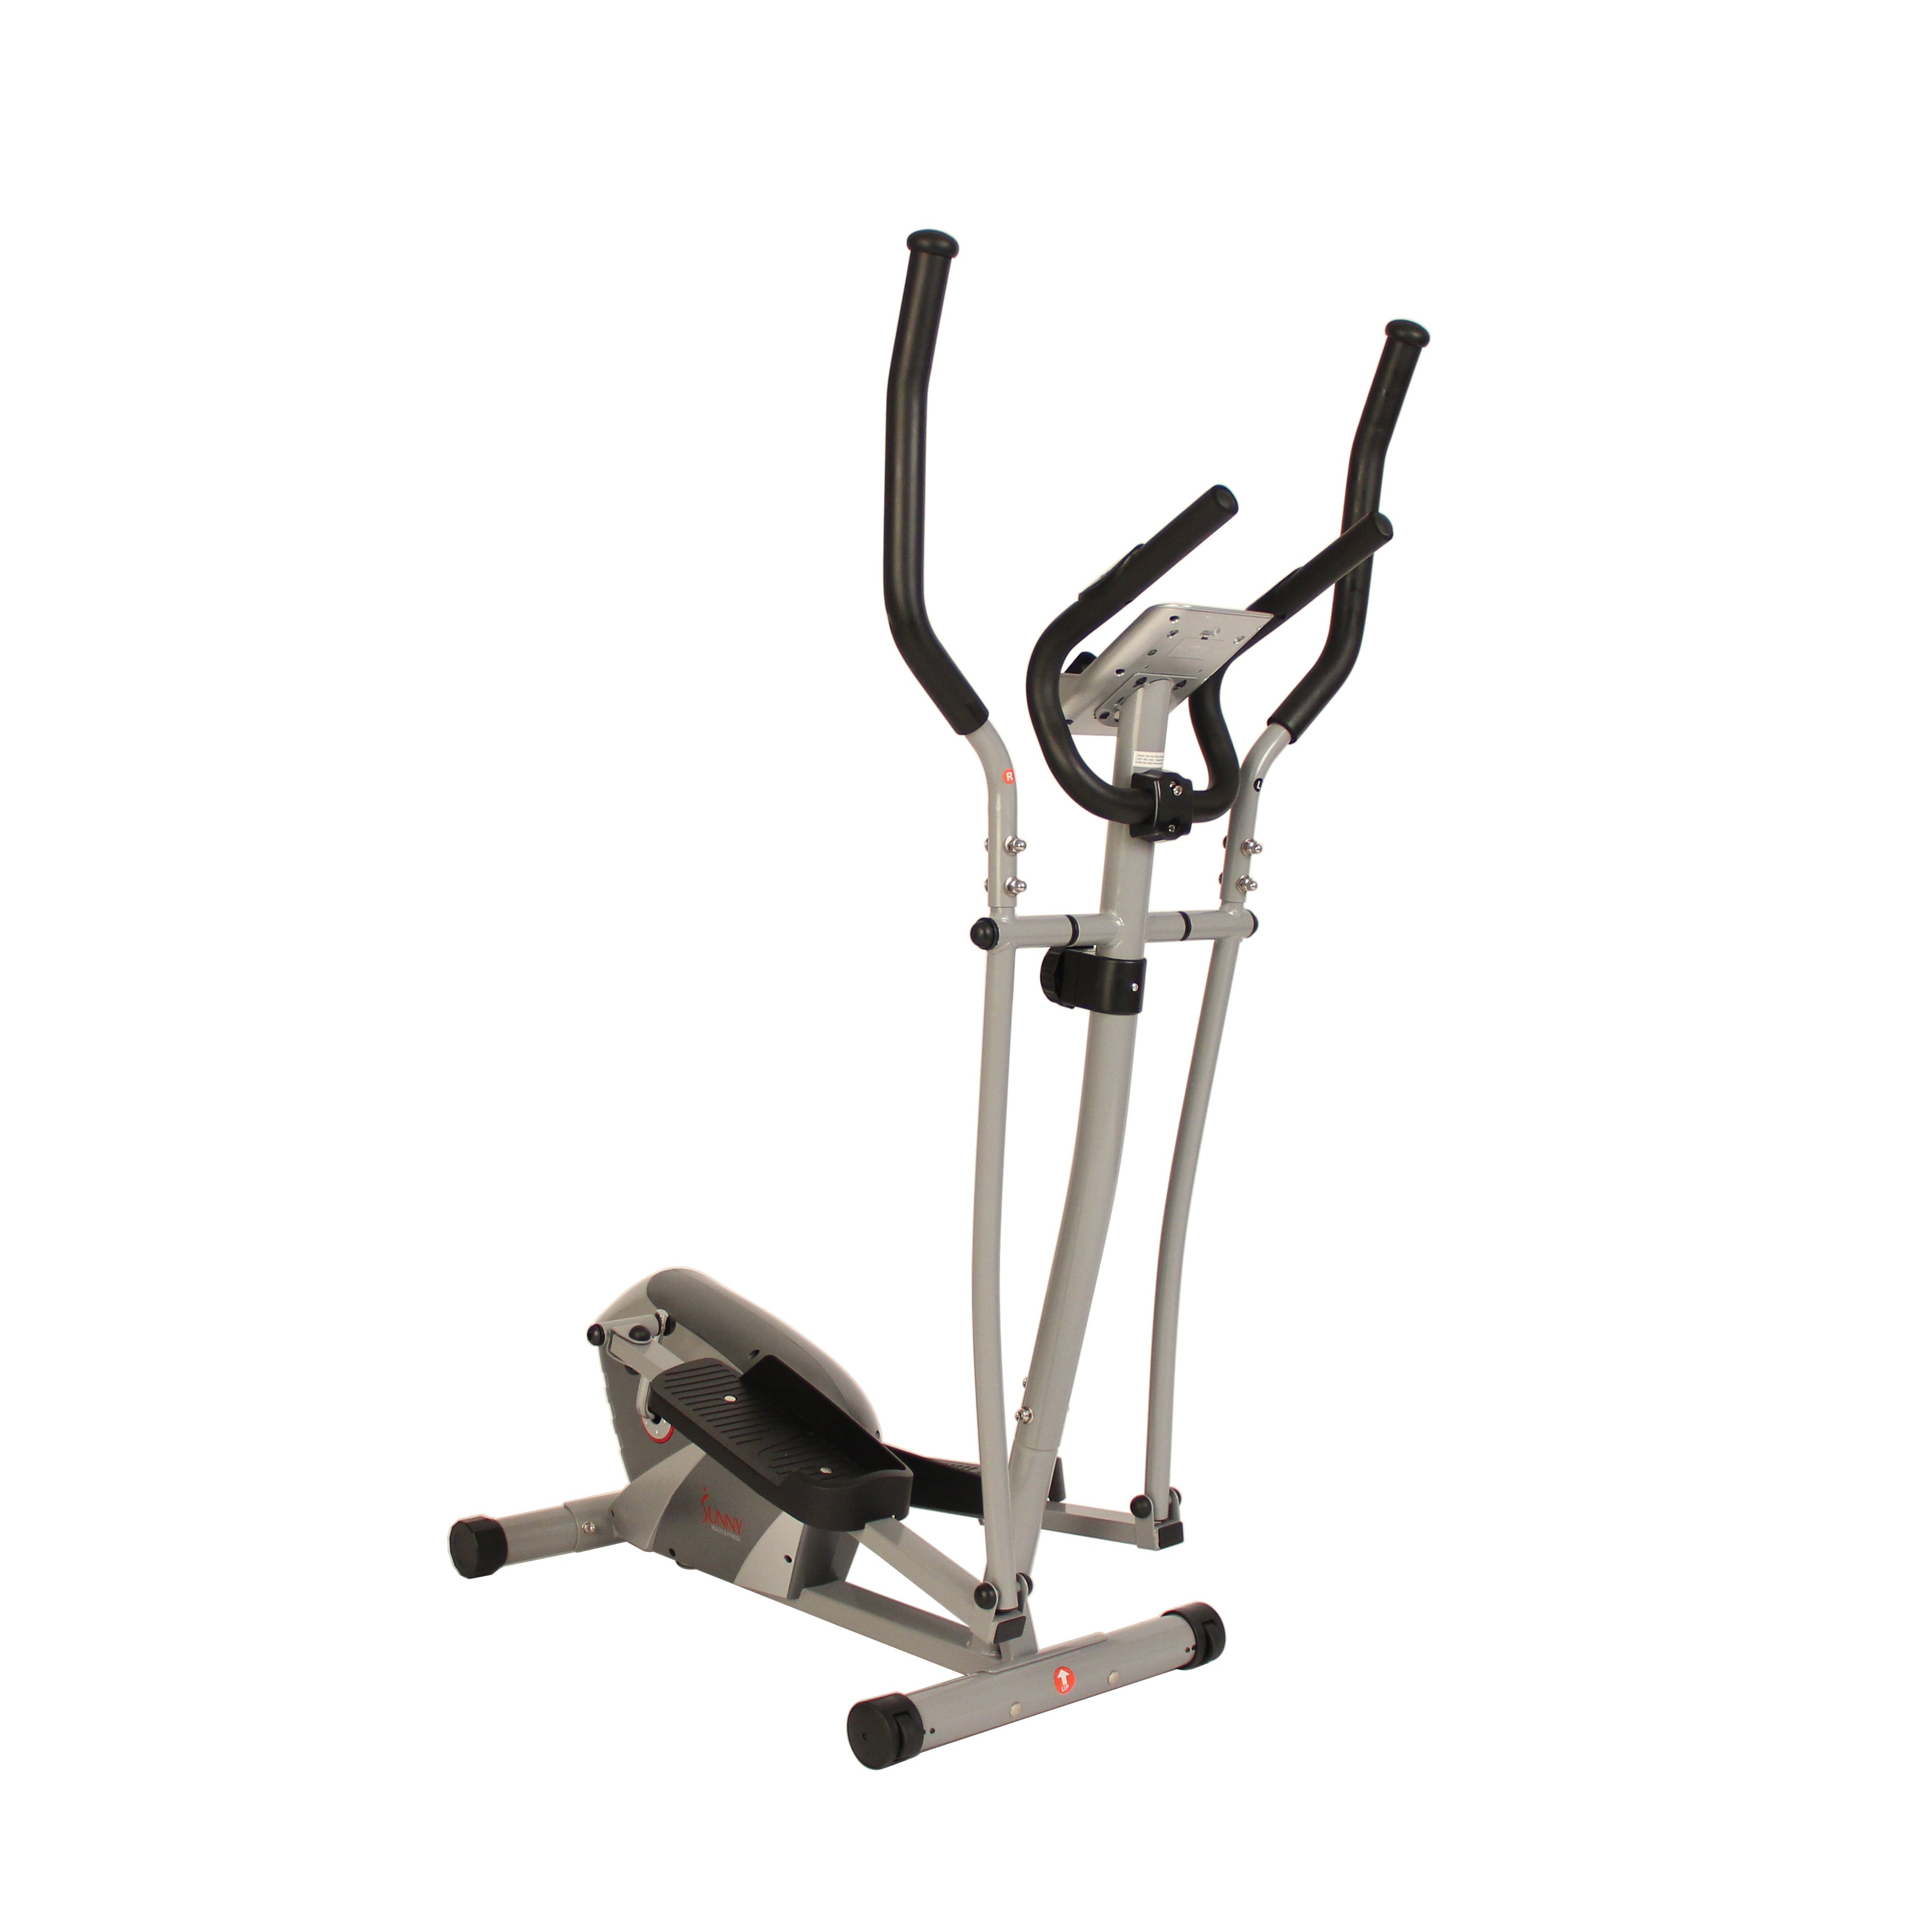 Sunny Health & Fitness SF-E3628 Magnetic Elliptical Trainer Elliptical Machine w/ LCD Monitor